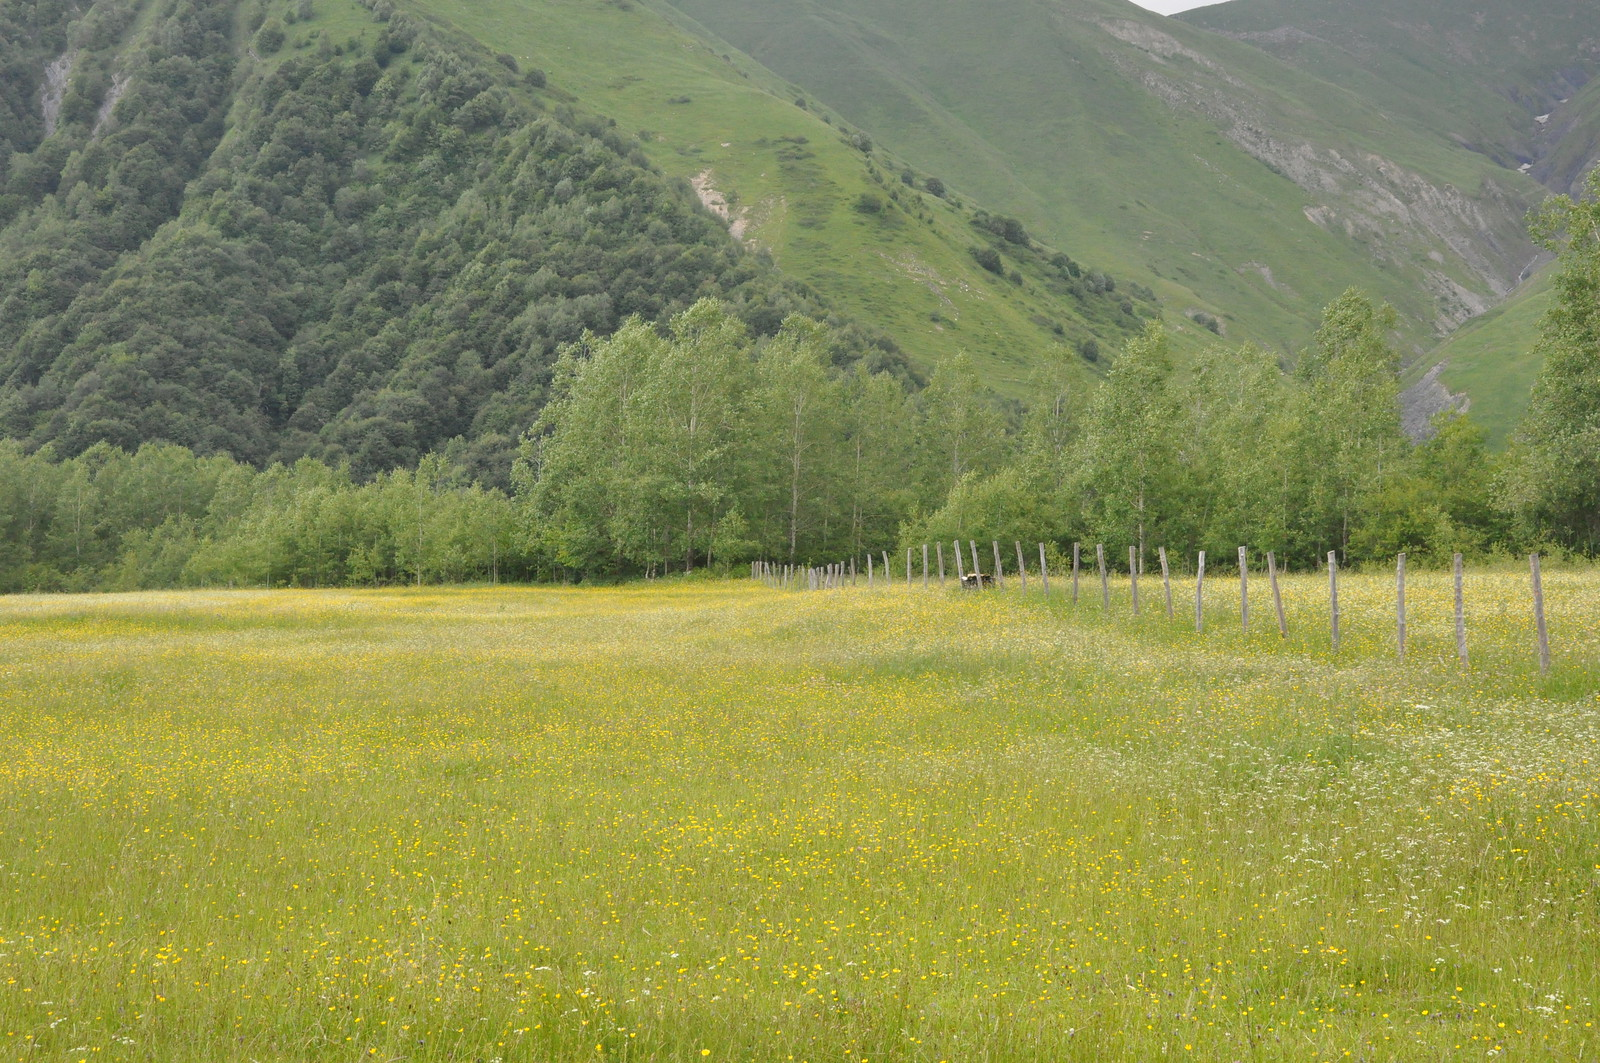 The Khada Valley, Nature